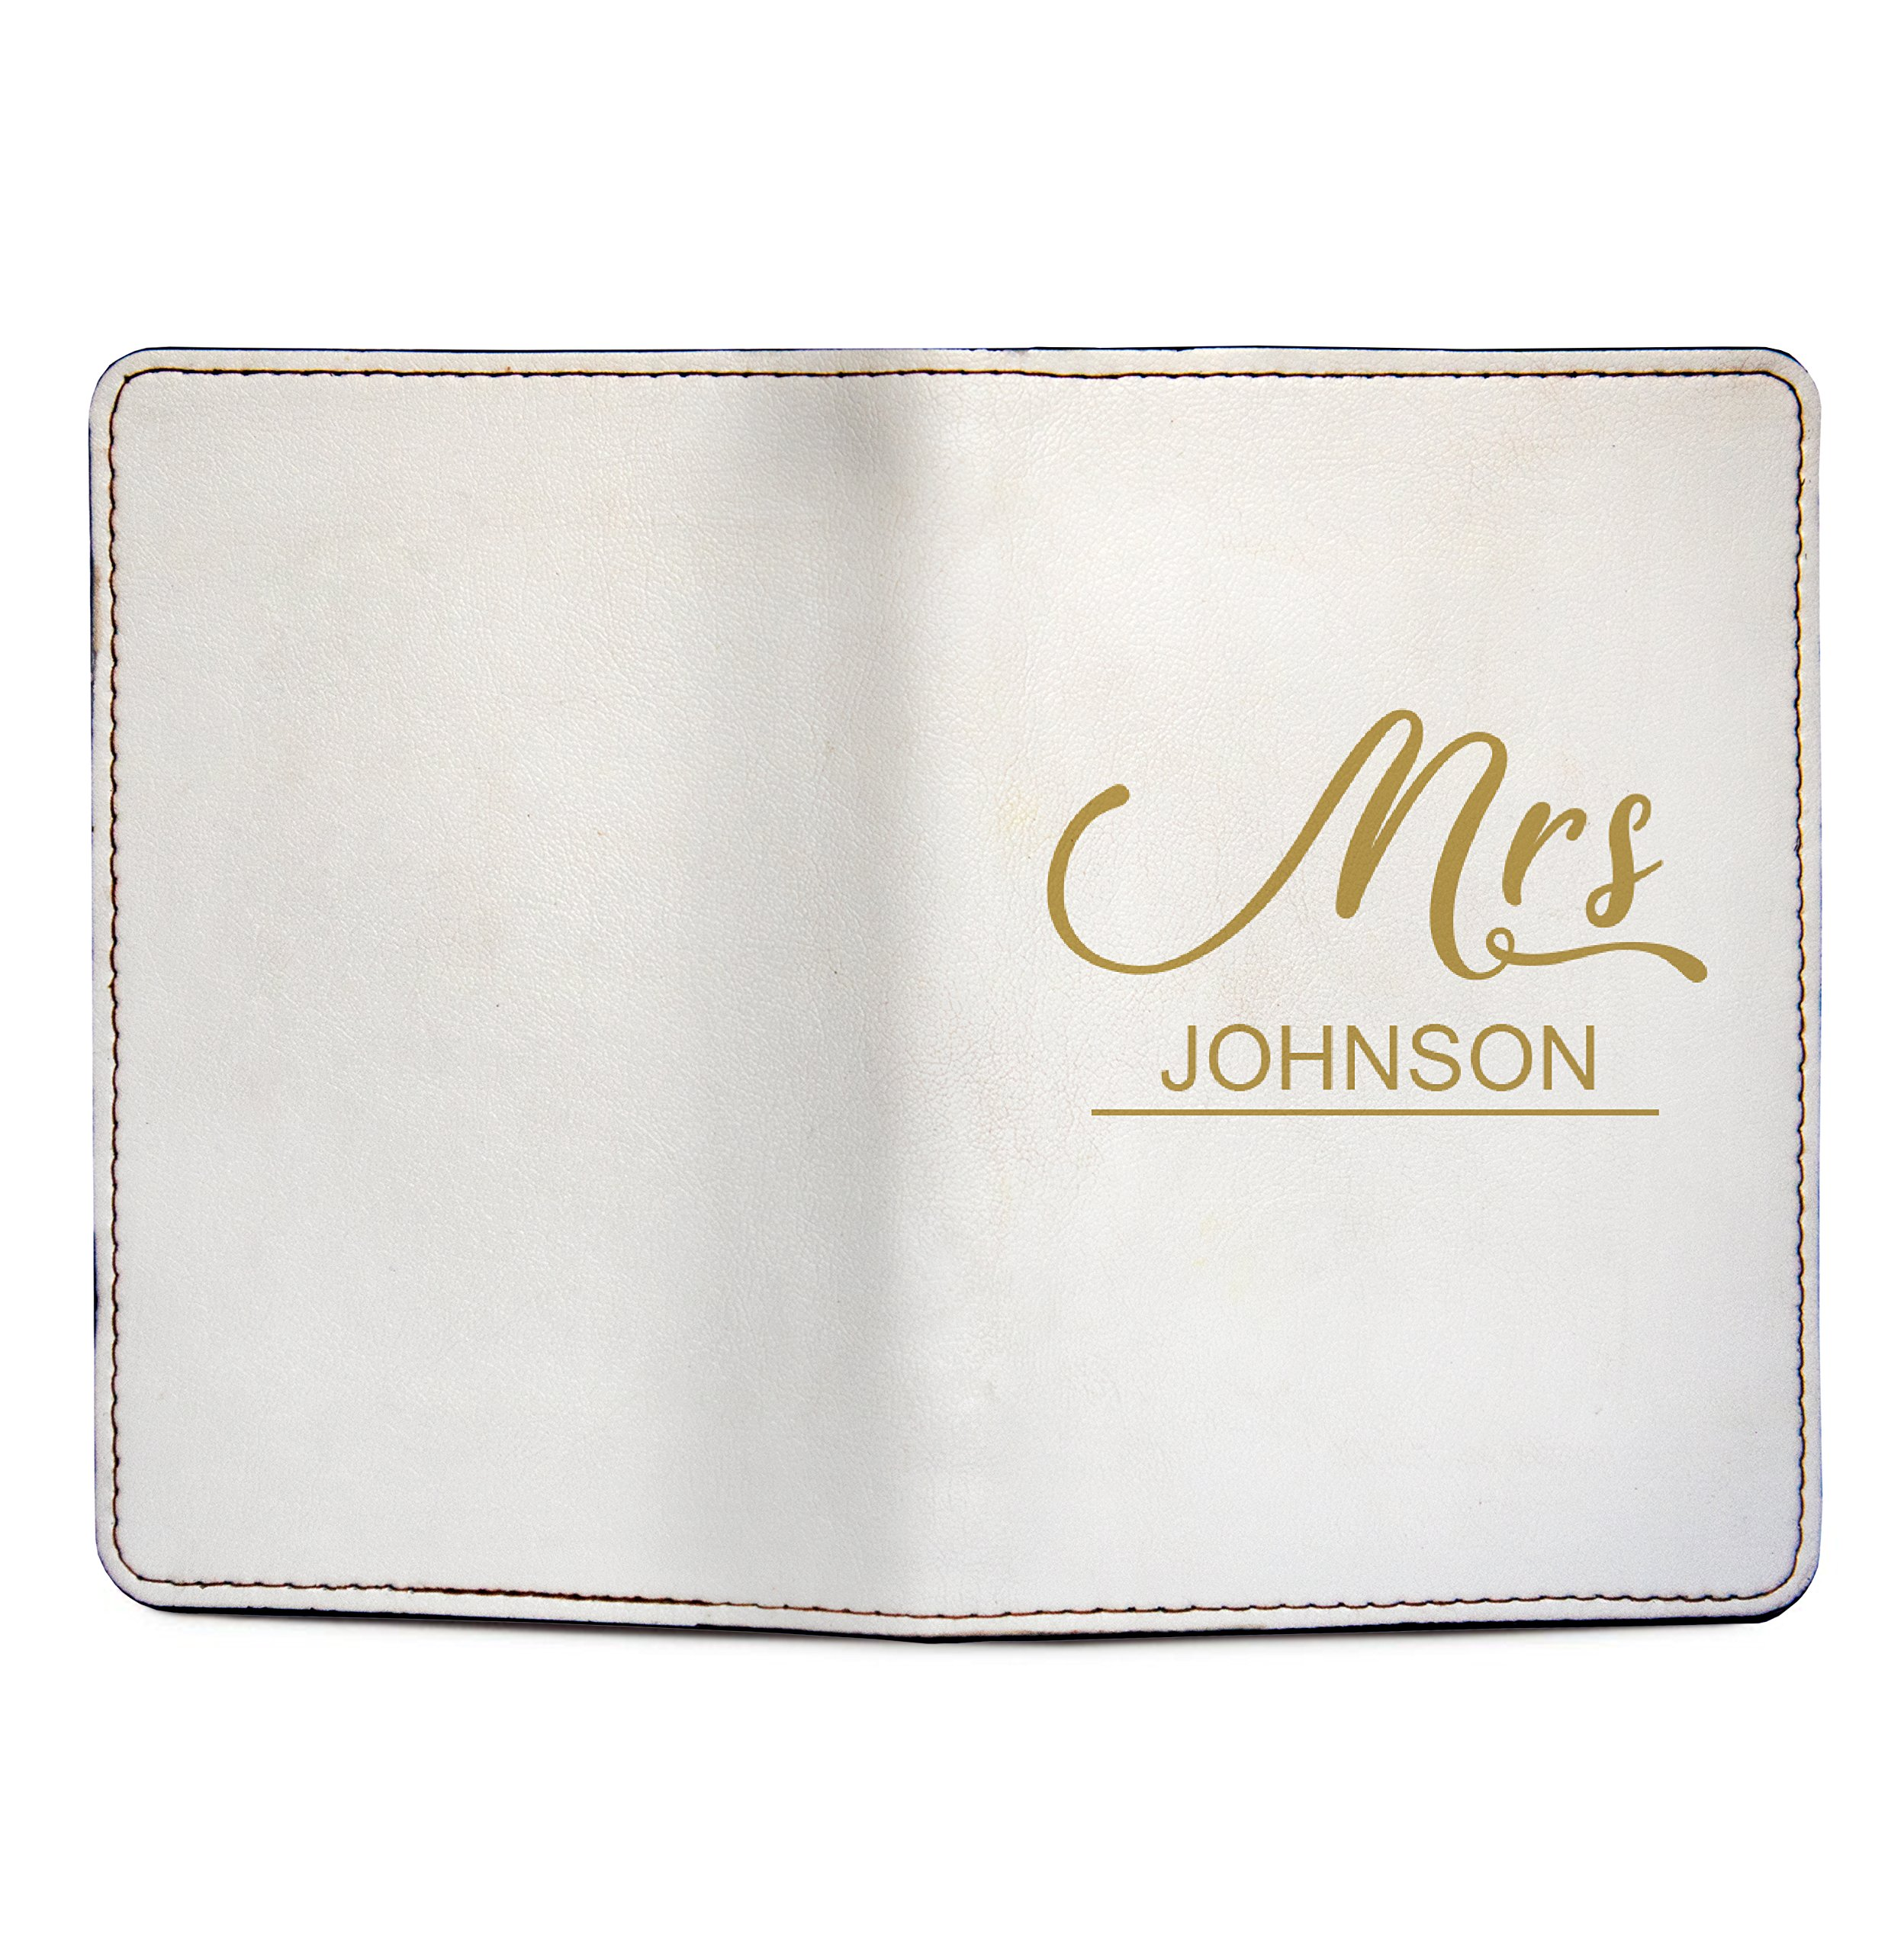 Mr And Mrs - Couple Passport Holder Personalized Passport Cover Set of 2 by With Love From Julie (Image #5)